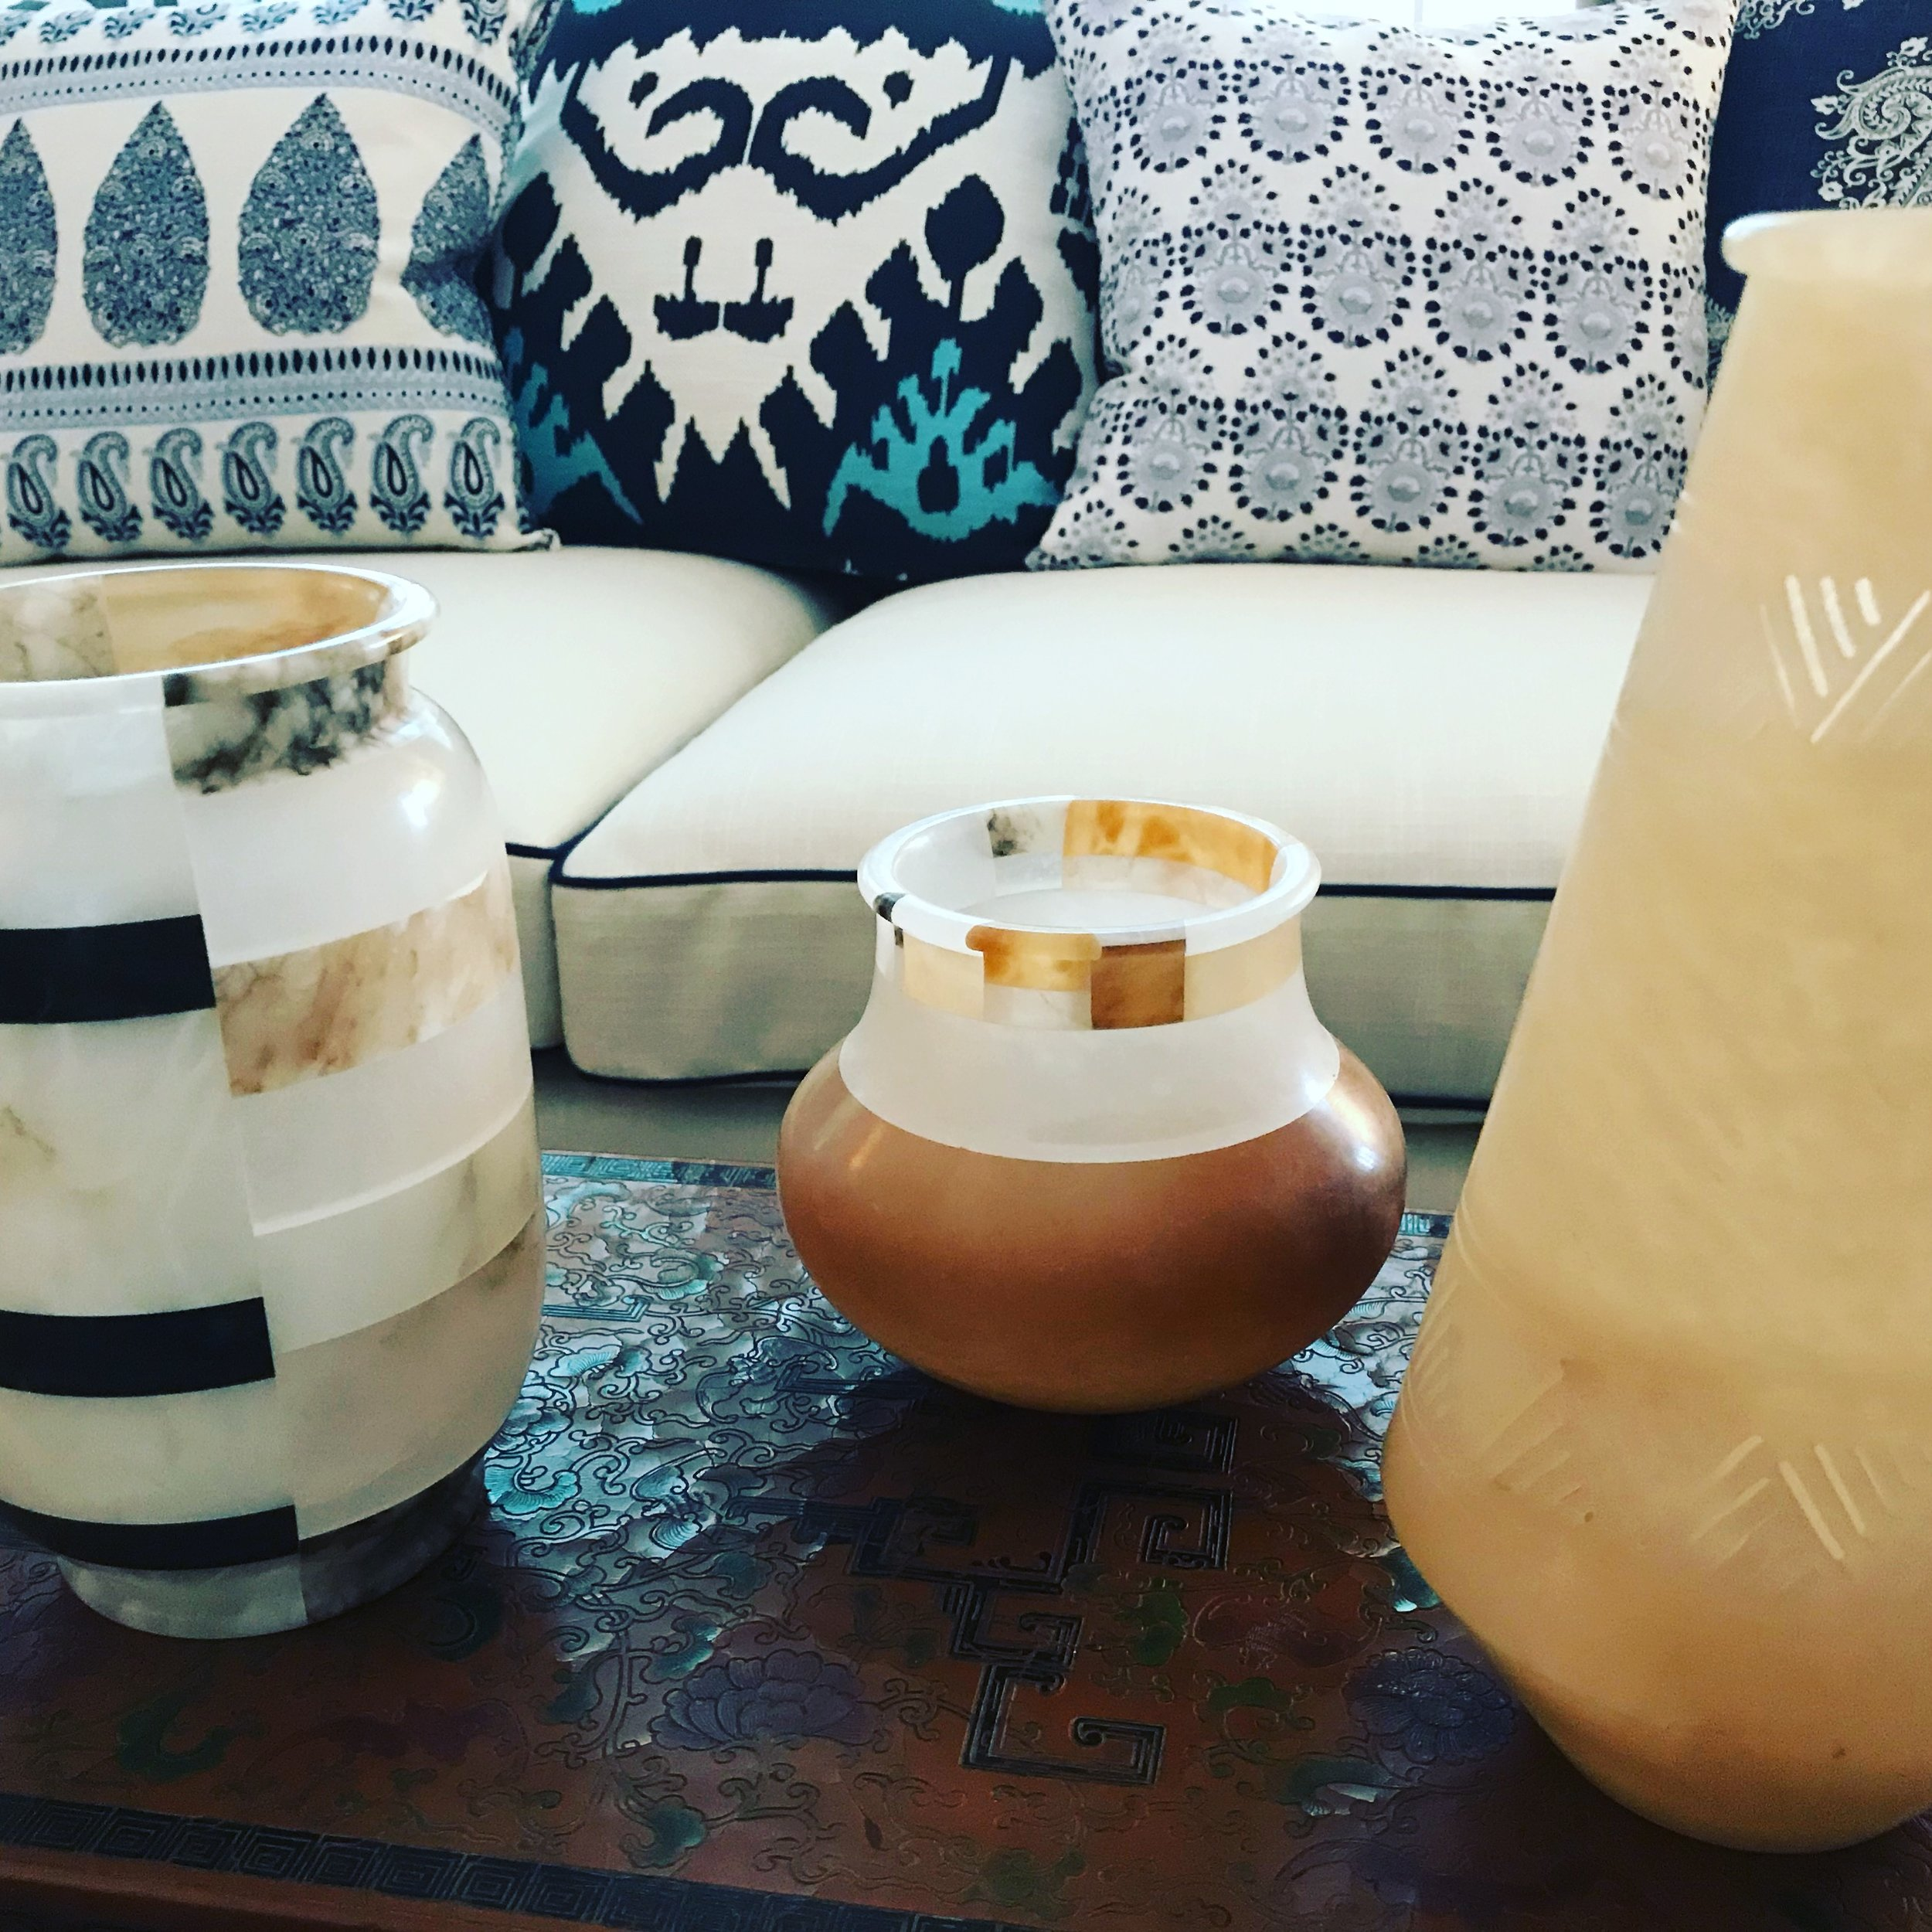 When buying for clients, Gary found these alabaster vases and brought them home.